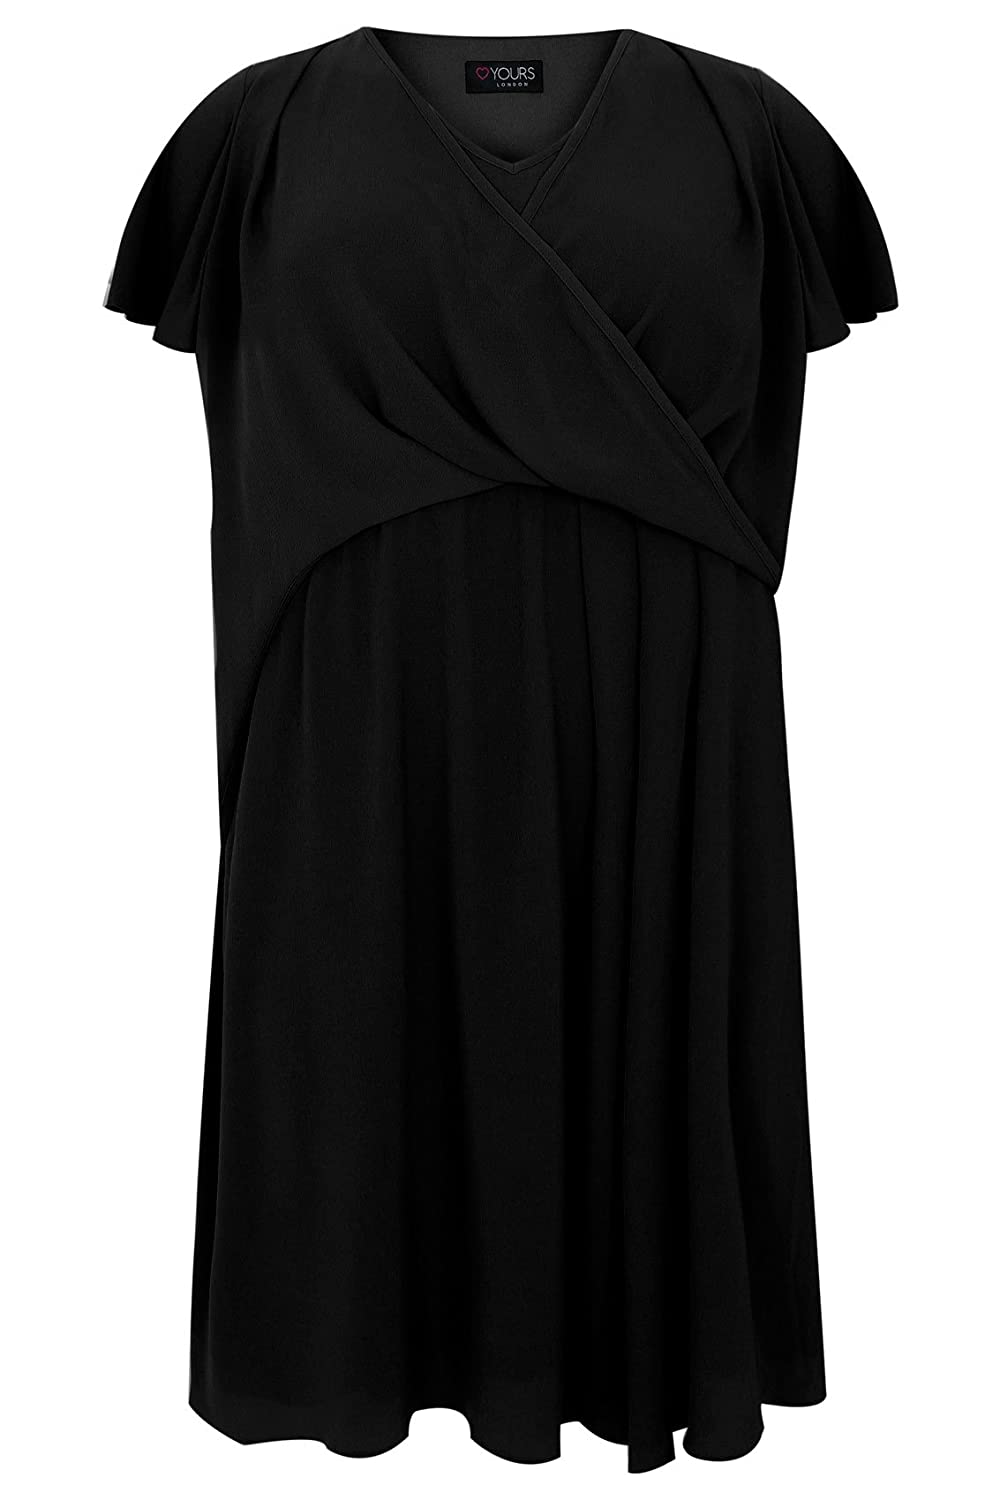 Yoursclothing Plus Size Womens Wrap Front Midi Dress With Angel Sleeves